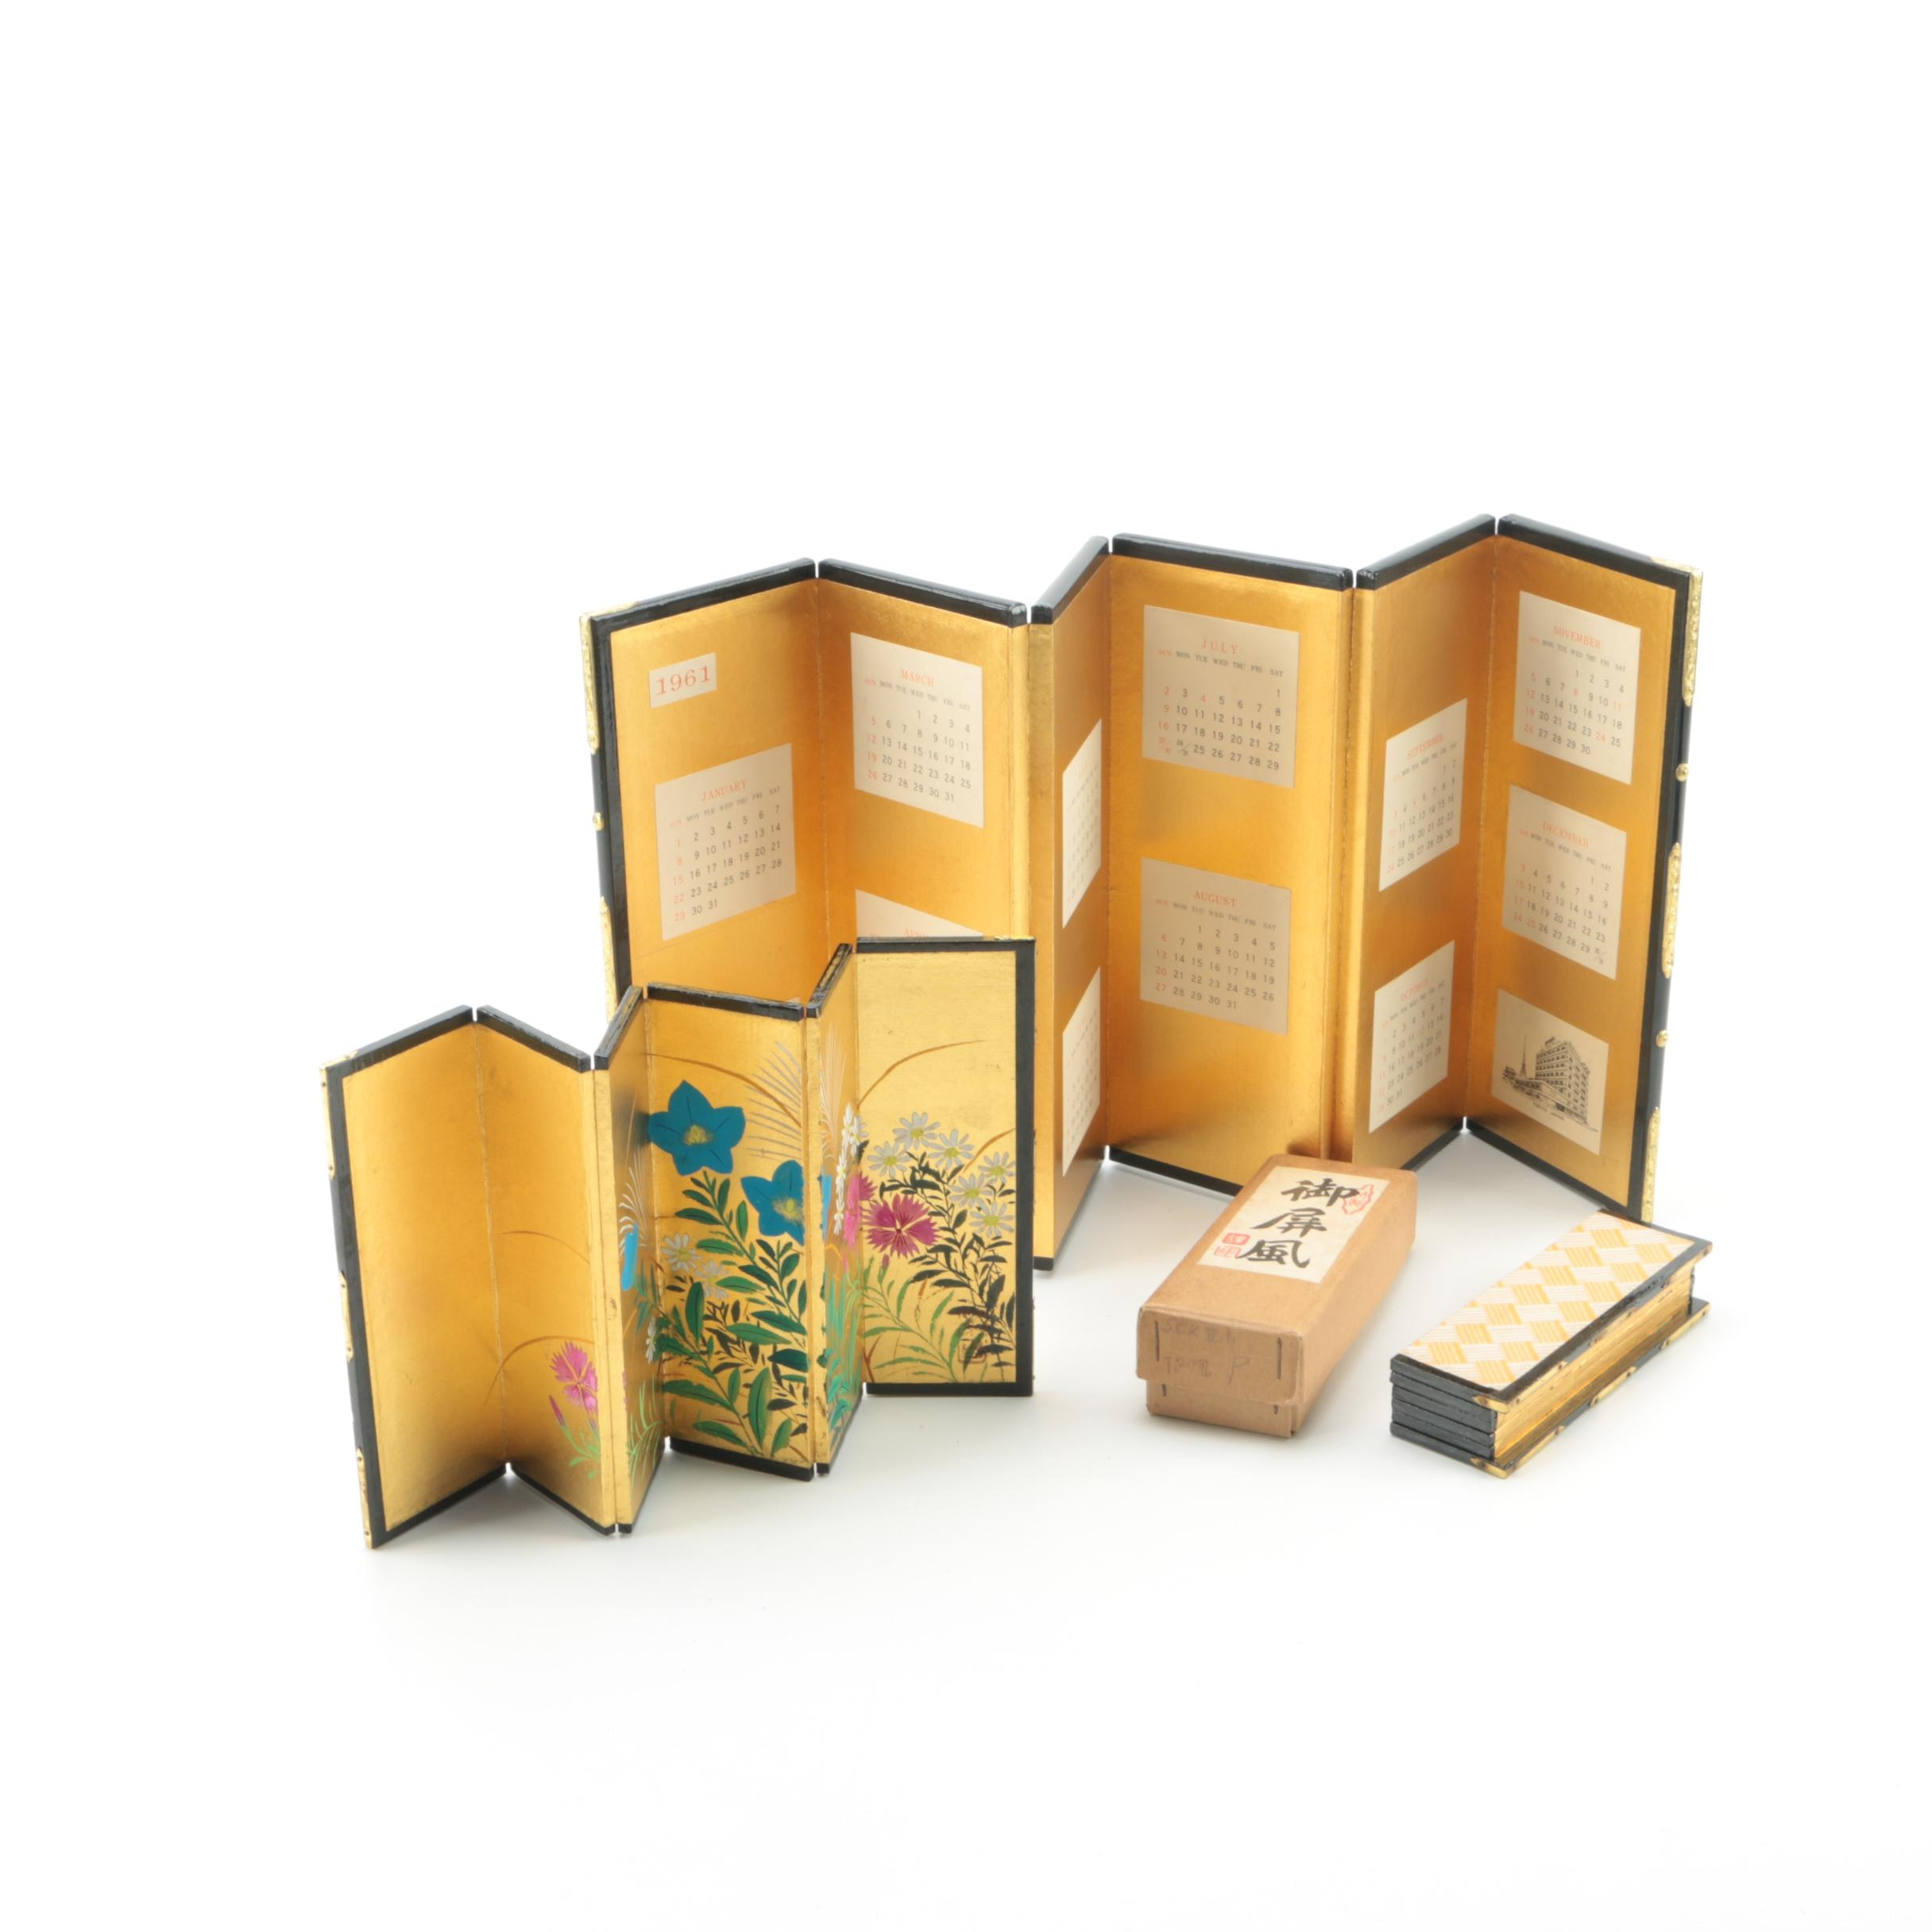 Vintage Japanese Folding Calendar with a Hand-Painted Floral Screen